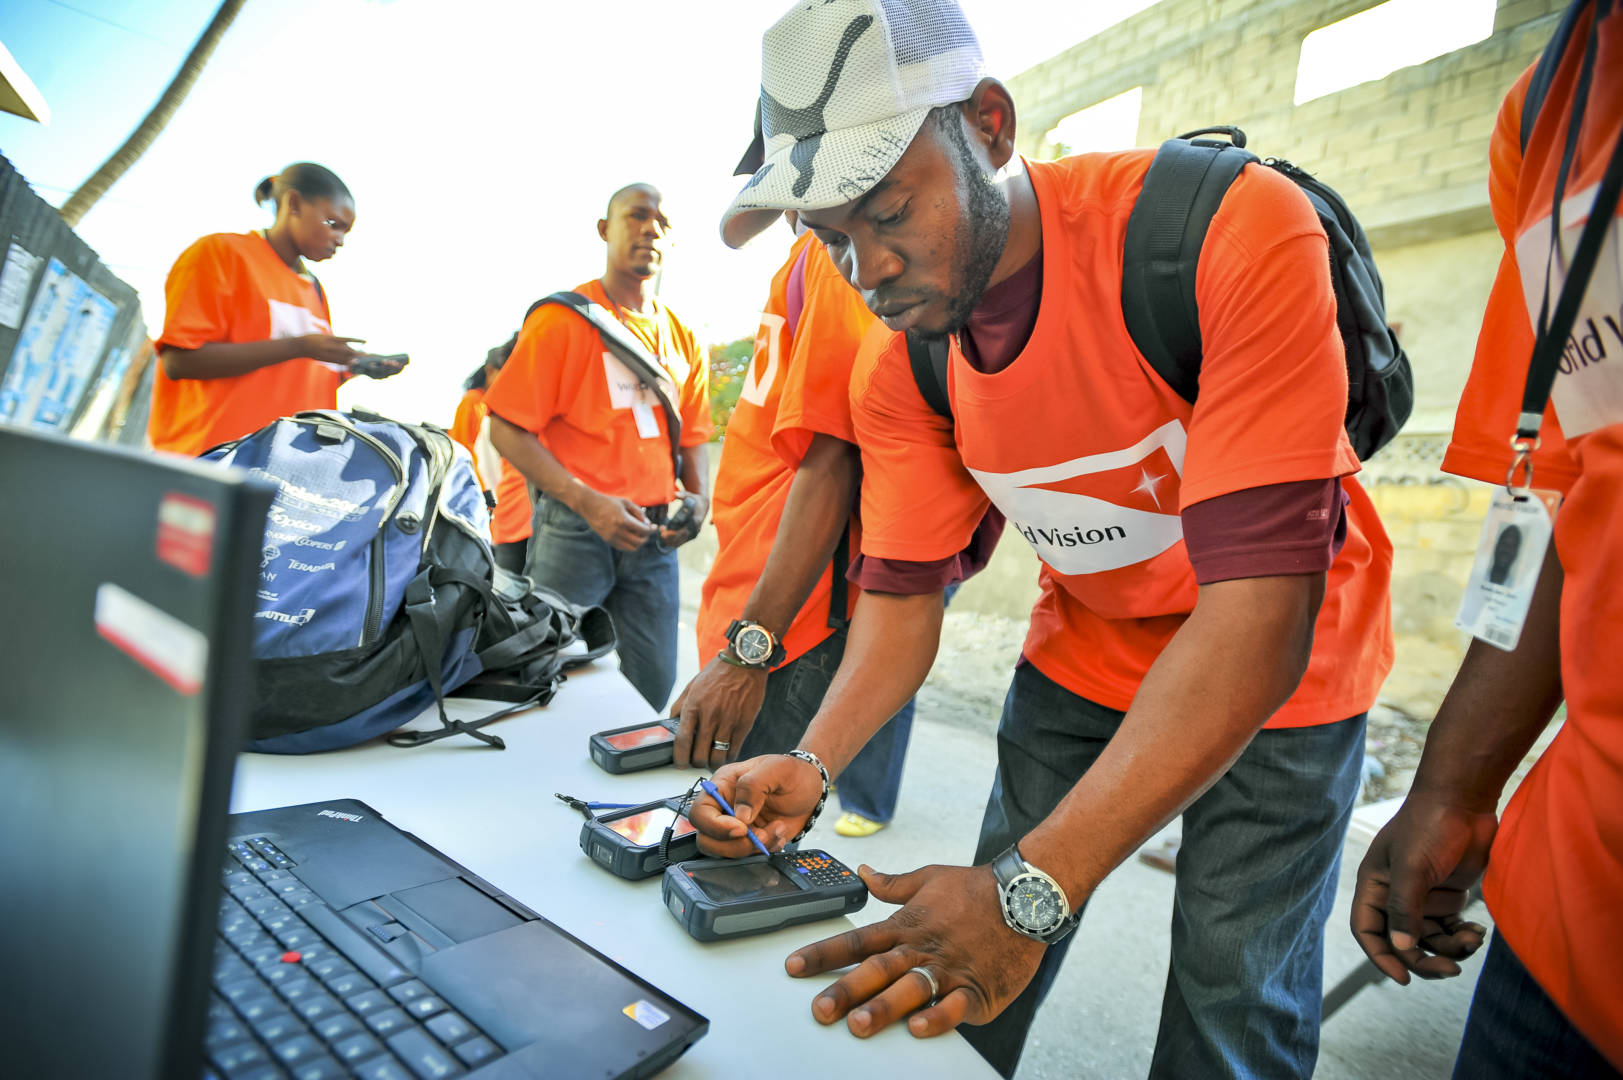 World Vision's Last Mile Mobile Solutions technology is revolutionizing how disaster survivors receive food, cash, and relief supplies in their time of greatest need.